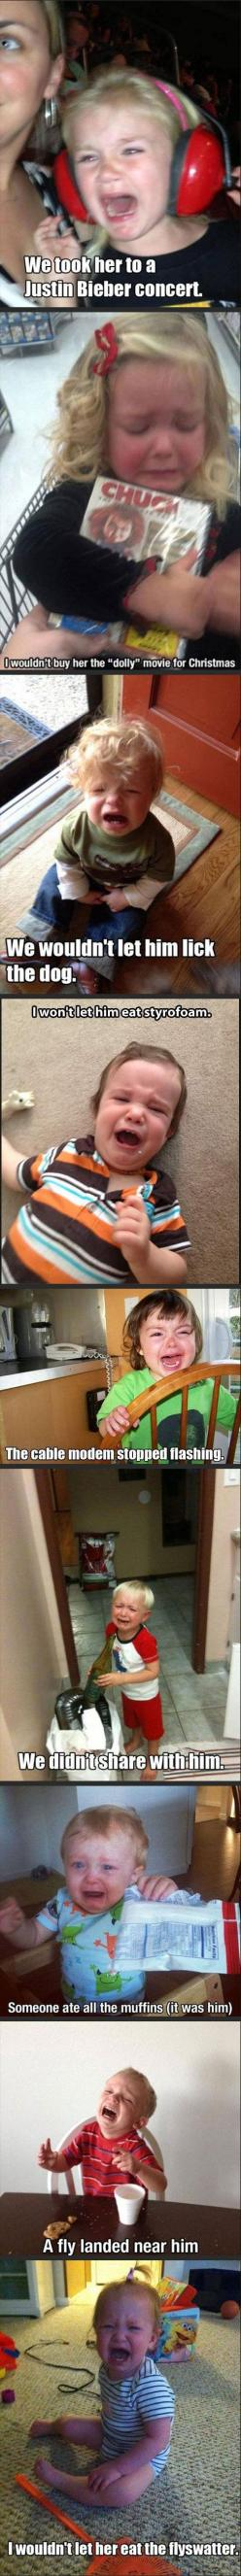 My son had a mental breakdown when his Dad picked up a paci off the floor and handed it to him.: Funny Parent, Baby Crying Funny, Funny Kids Humor, Babies Crying Funny, Funny Baby, Funny Kids Crying, Kids Crying Funny, Reasons Kids Cry Funny